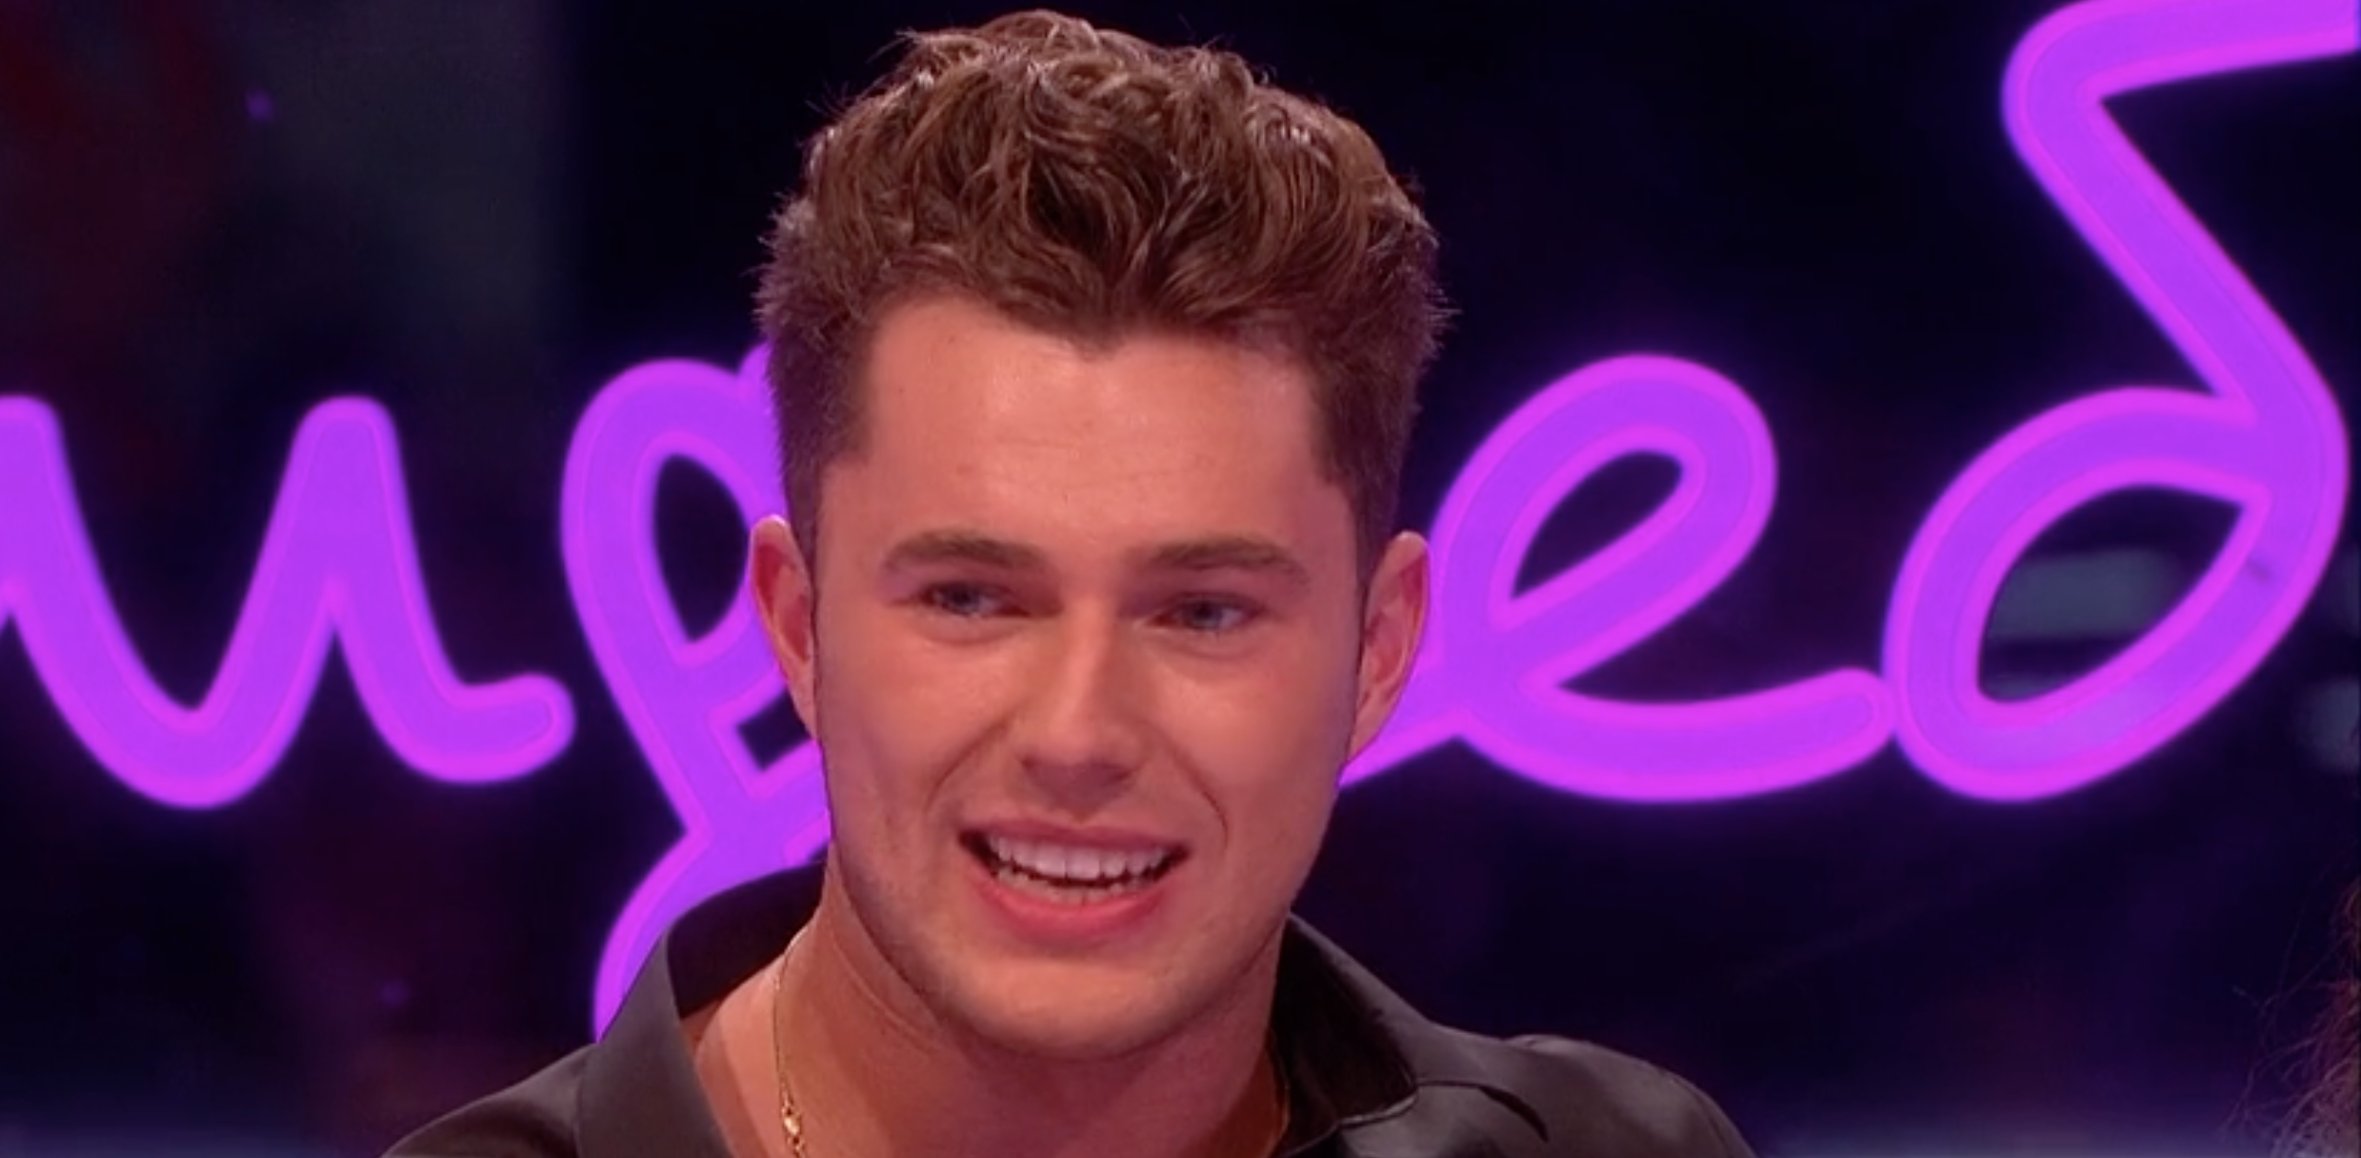 Love Island's Curtis Pritchard reveals he gained 'two stone' in the villa